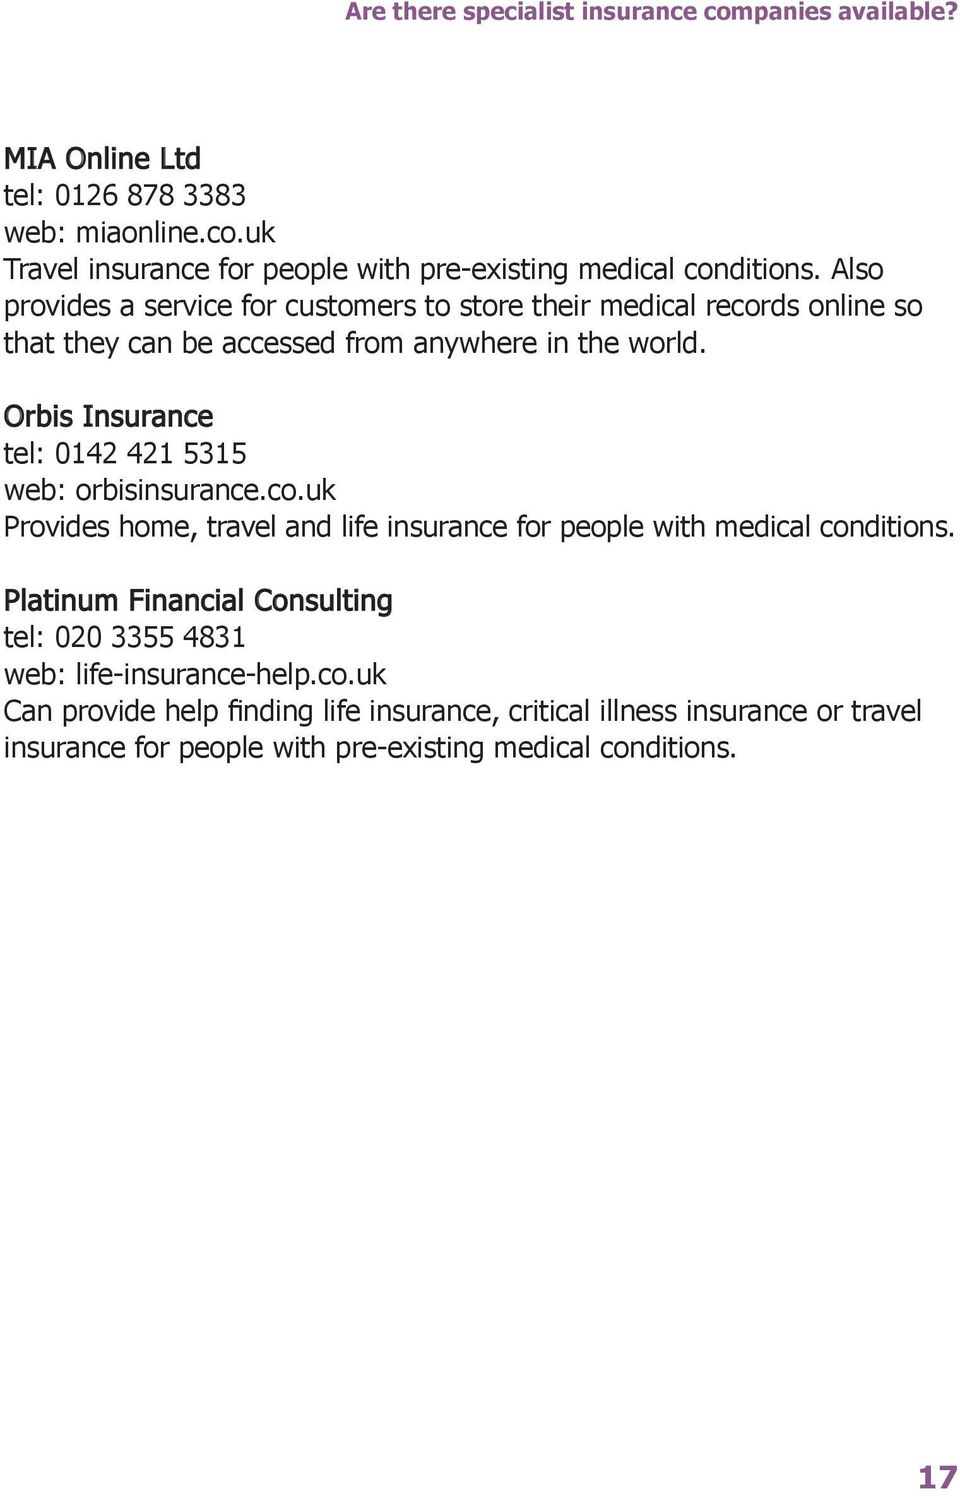 Orbis Insurance tel: 0142 421 5315 web: orbisinsurance.co.uk Provides home, travel and life insurance for people with medical conditions.